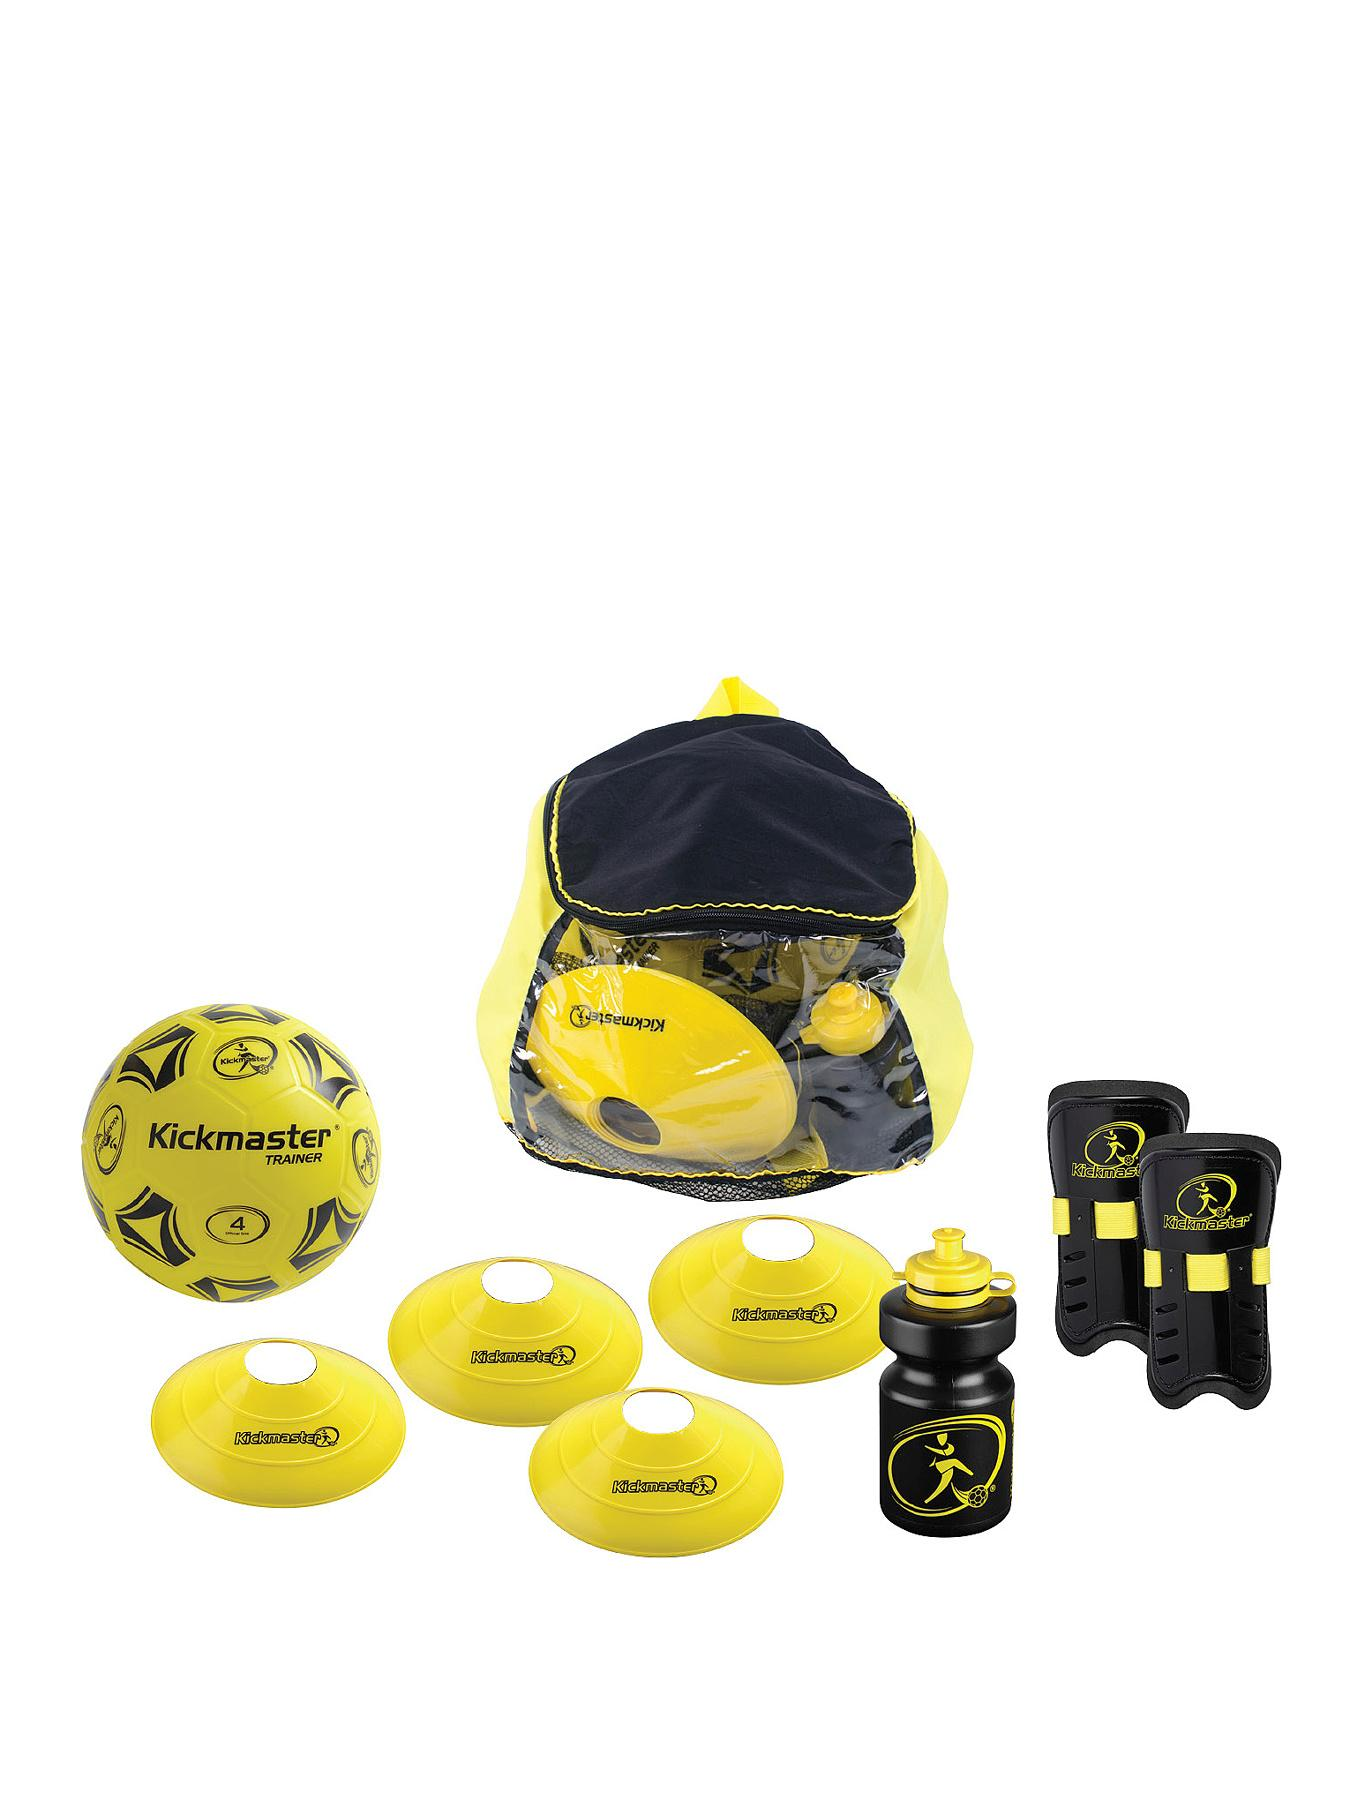 Kickmaster Back Pack Training Set